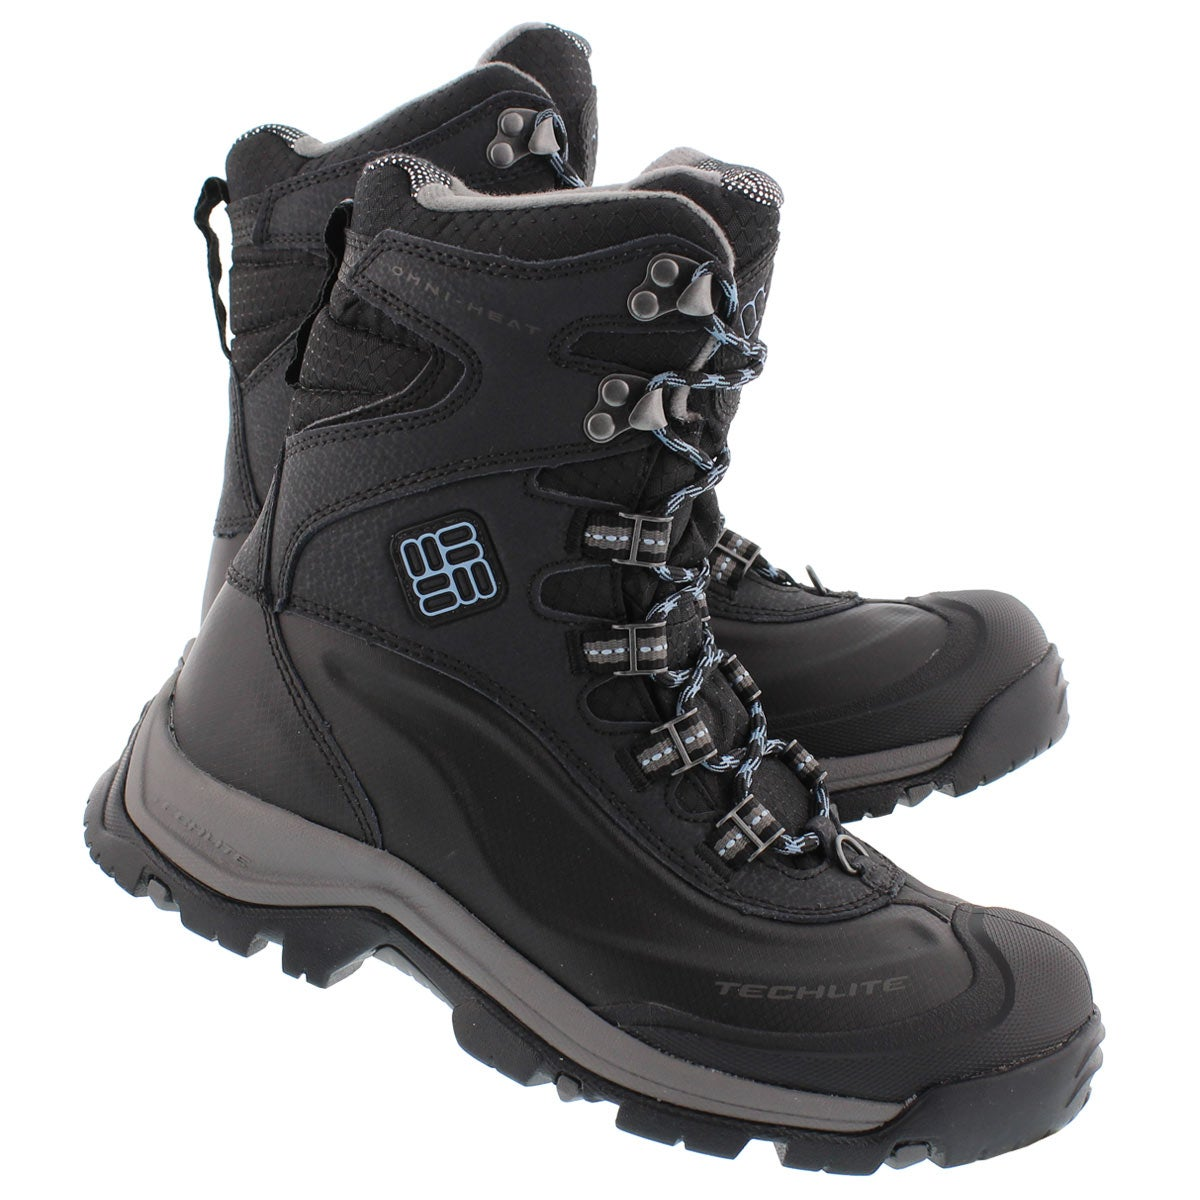 Lds Bugaboot Plus III black wntr boot